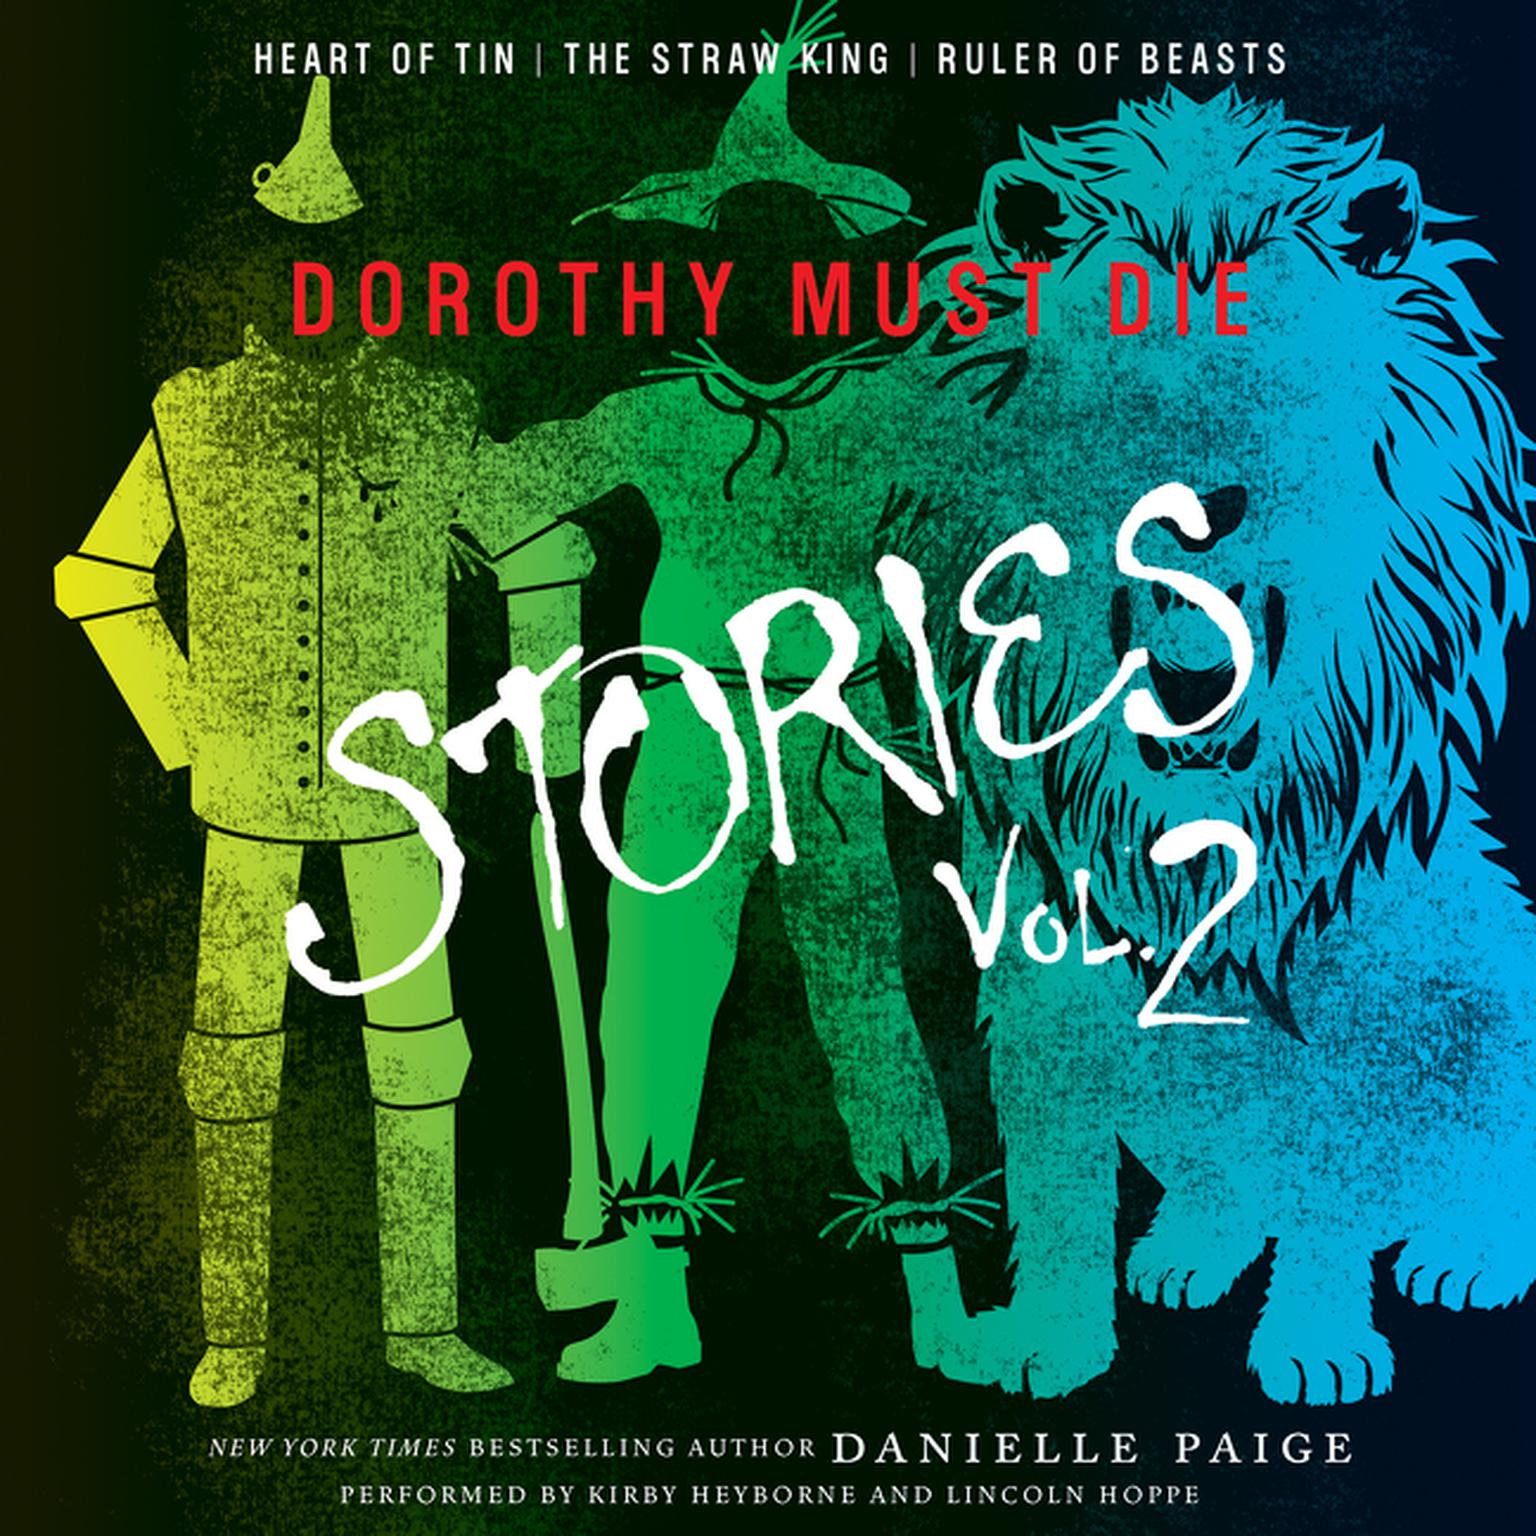 Printable Dorothy Must Die Stories, Vol. 2: Heart of Tin, The Straw King, Ruler of Beasts Audiobook Cover Art